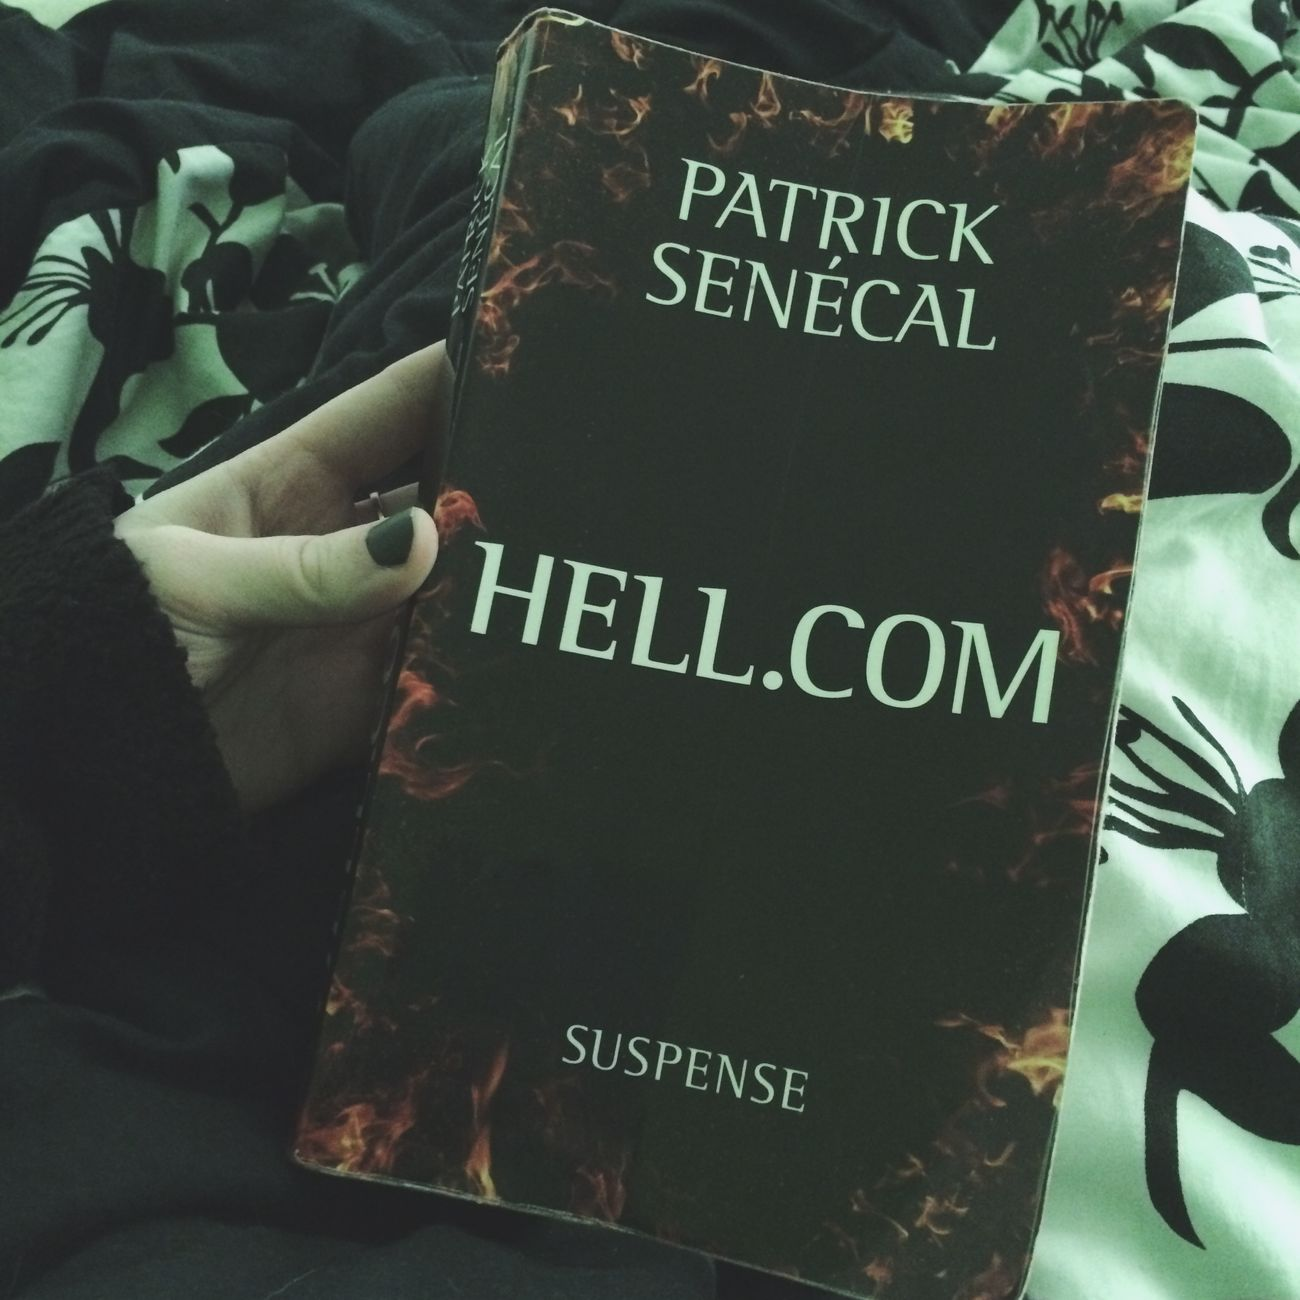 Favorite Book Gore Thriller Love It Patrick Senecal Hell Hell.com